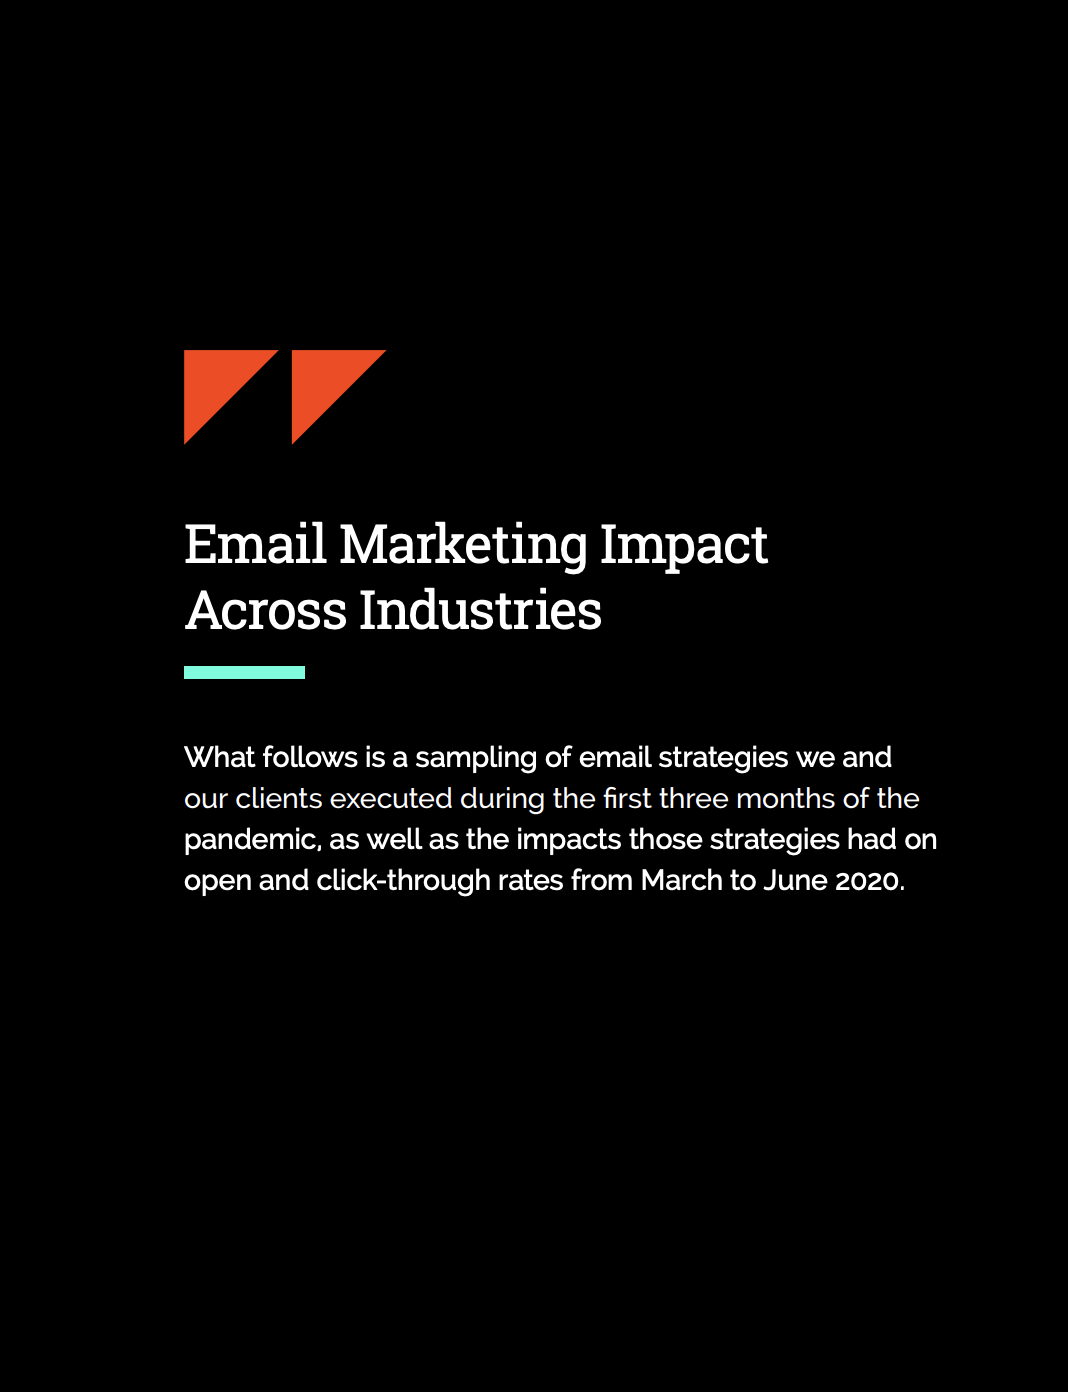 email marketing across industries